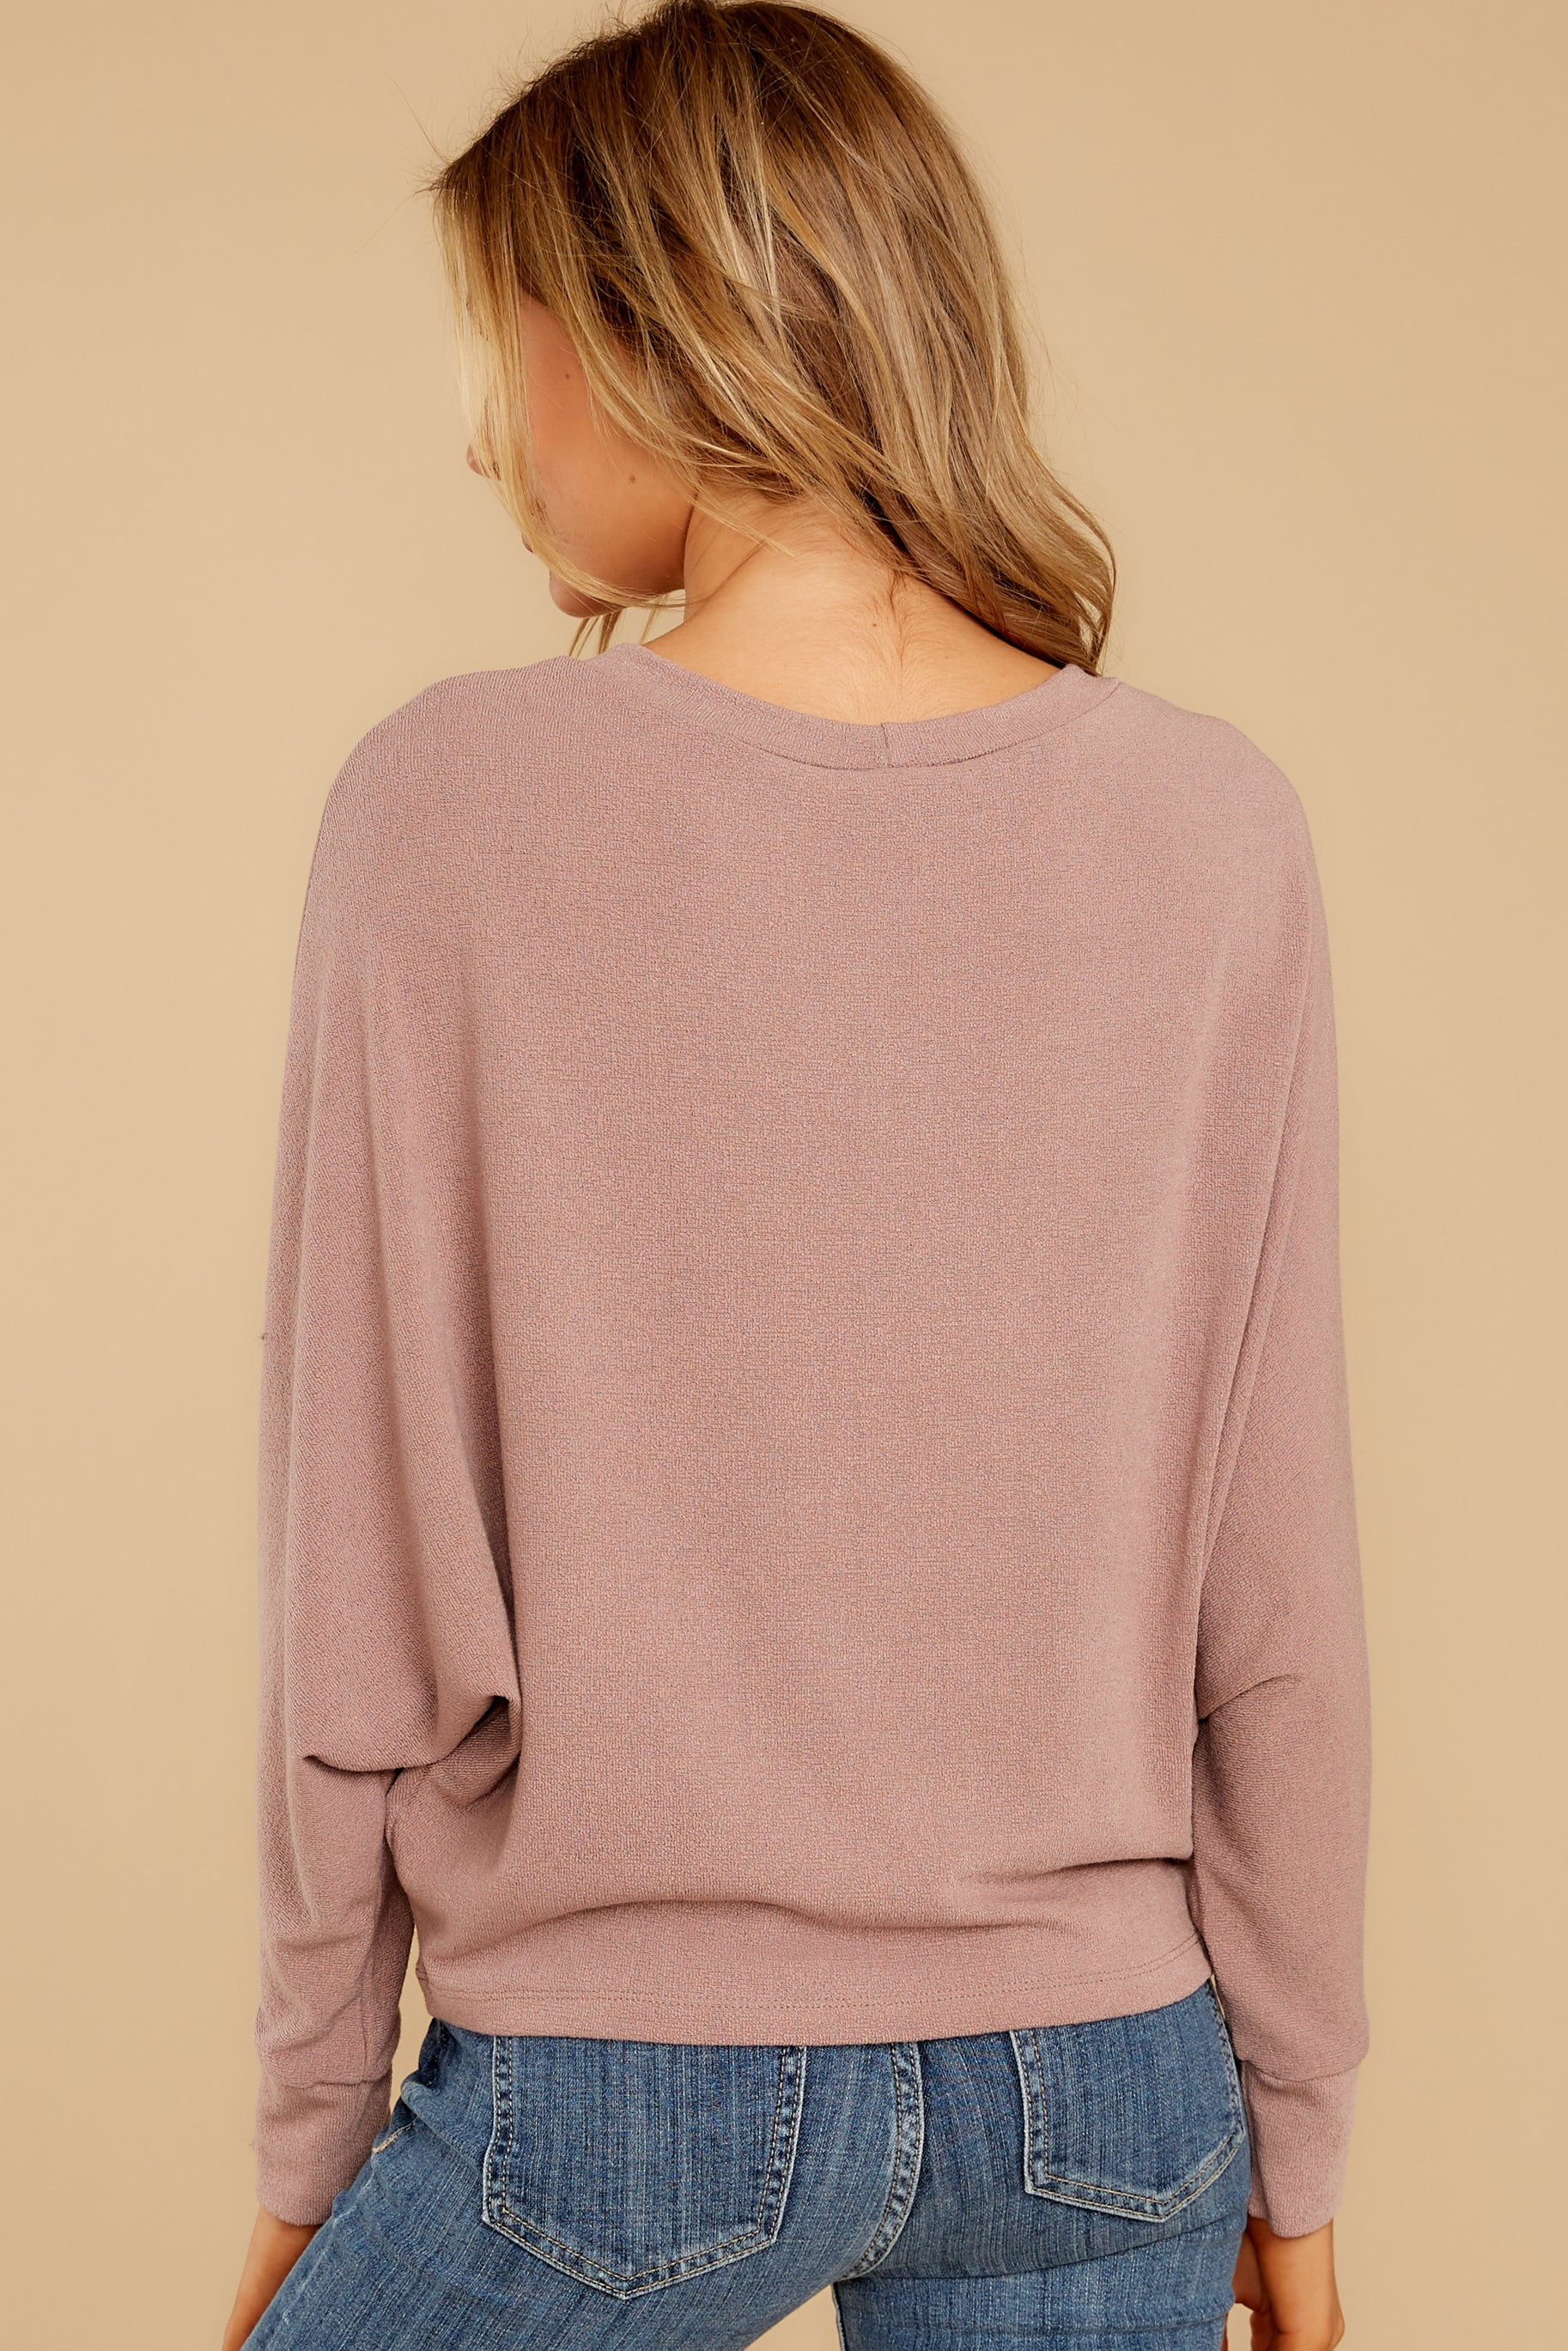 7 Feeling Casual Mauve Top at reddressboutique.com